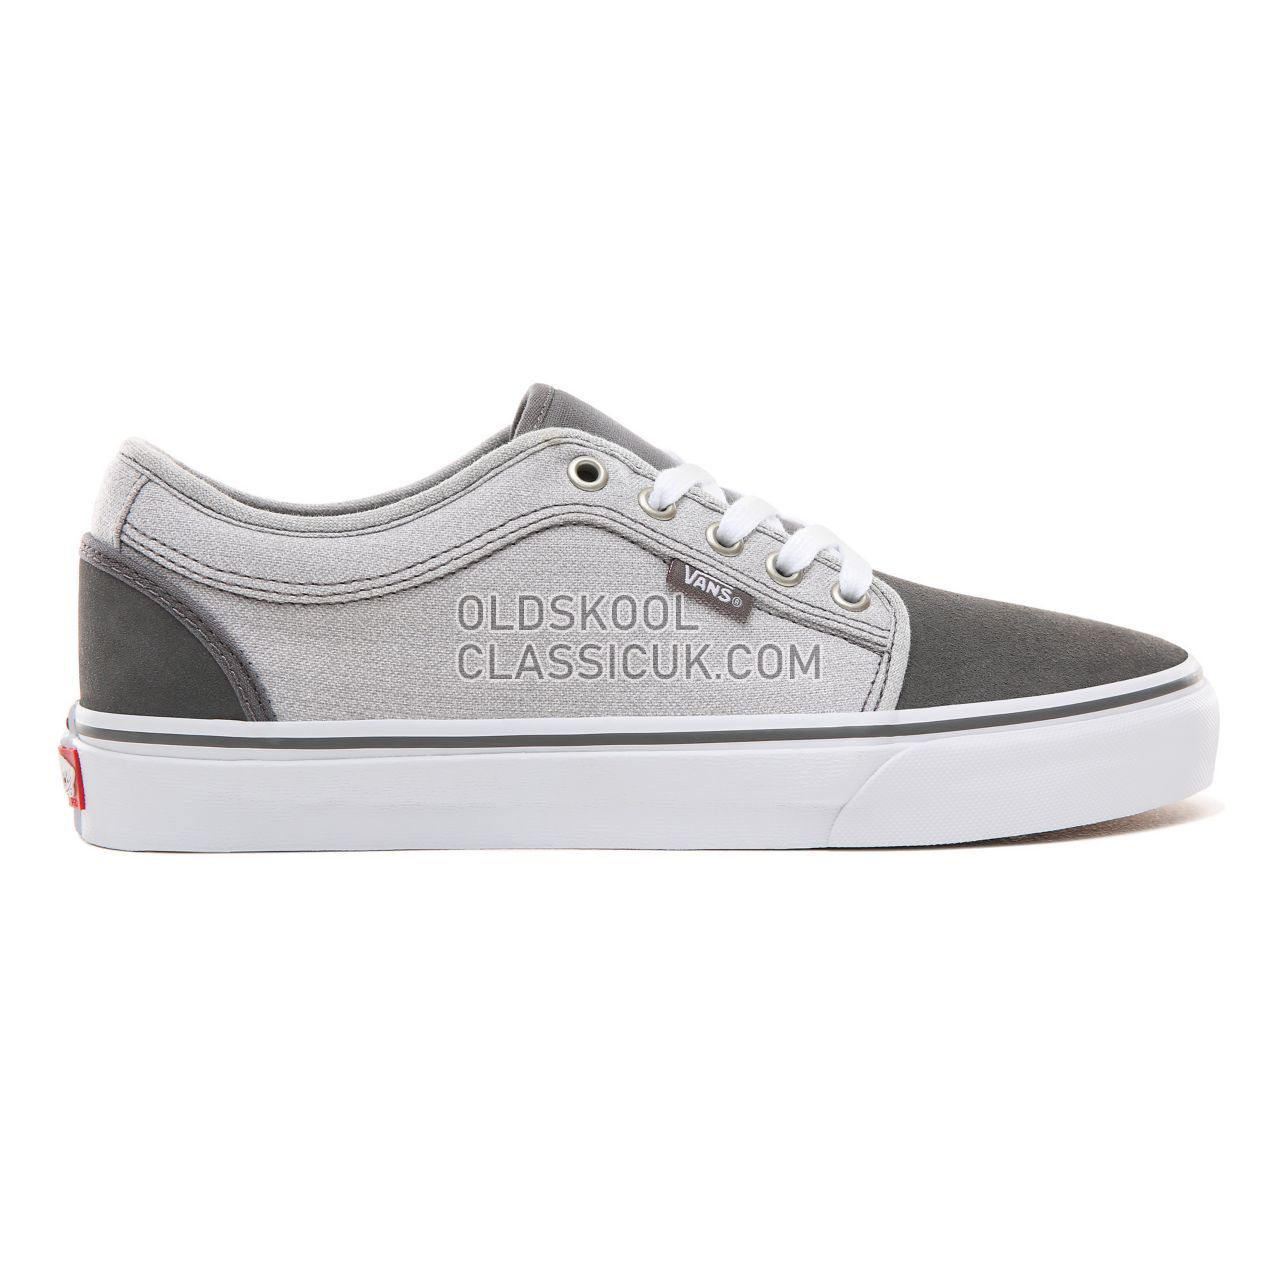 Vans Suiting Chukka Low Sneakers Mens (Suiting) Pewter/Frost Gray VA38CGU1J Shoes